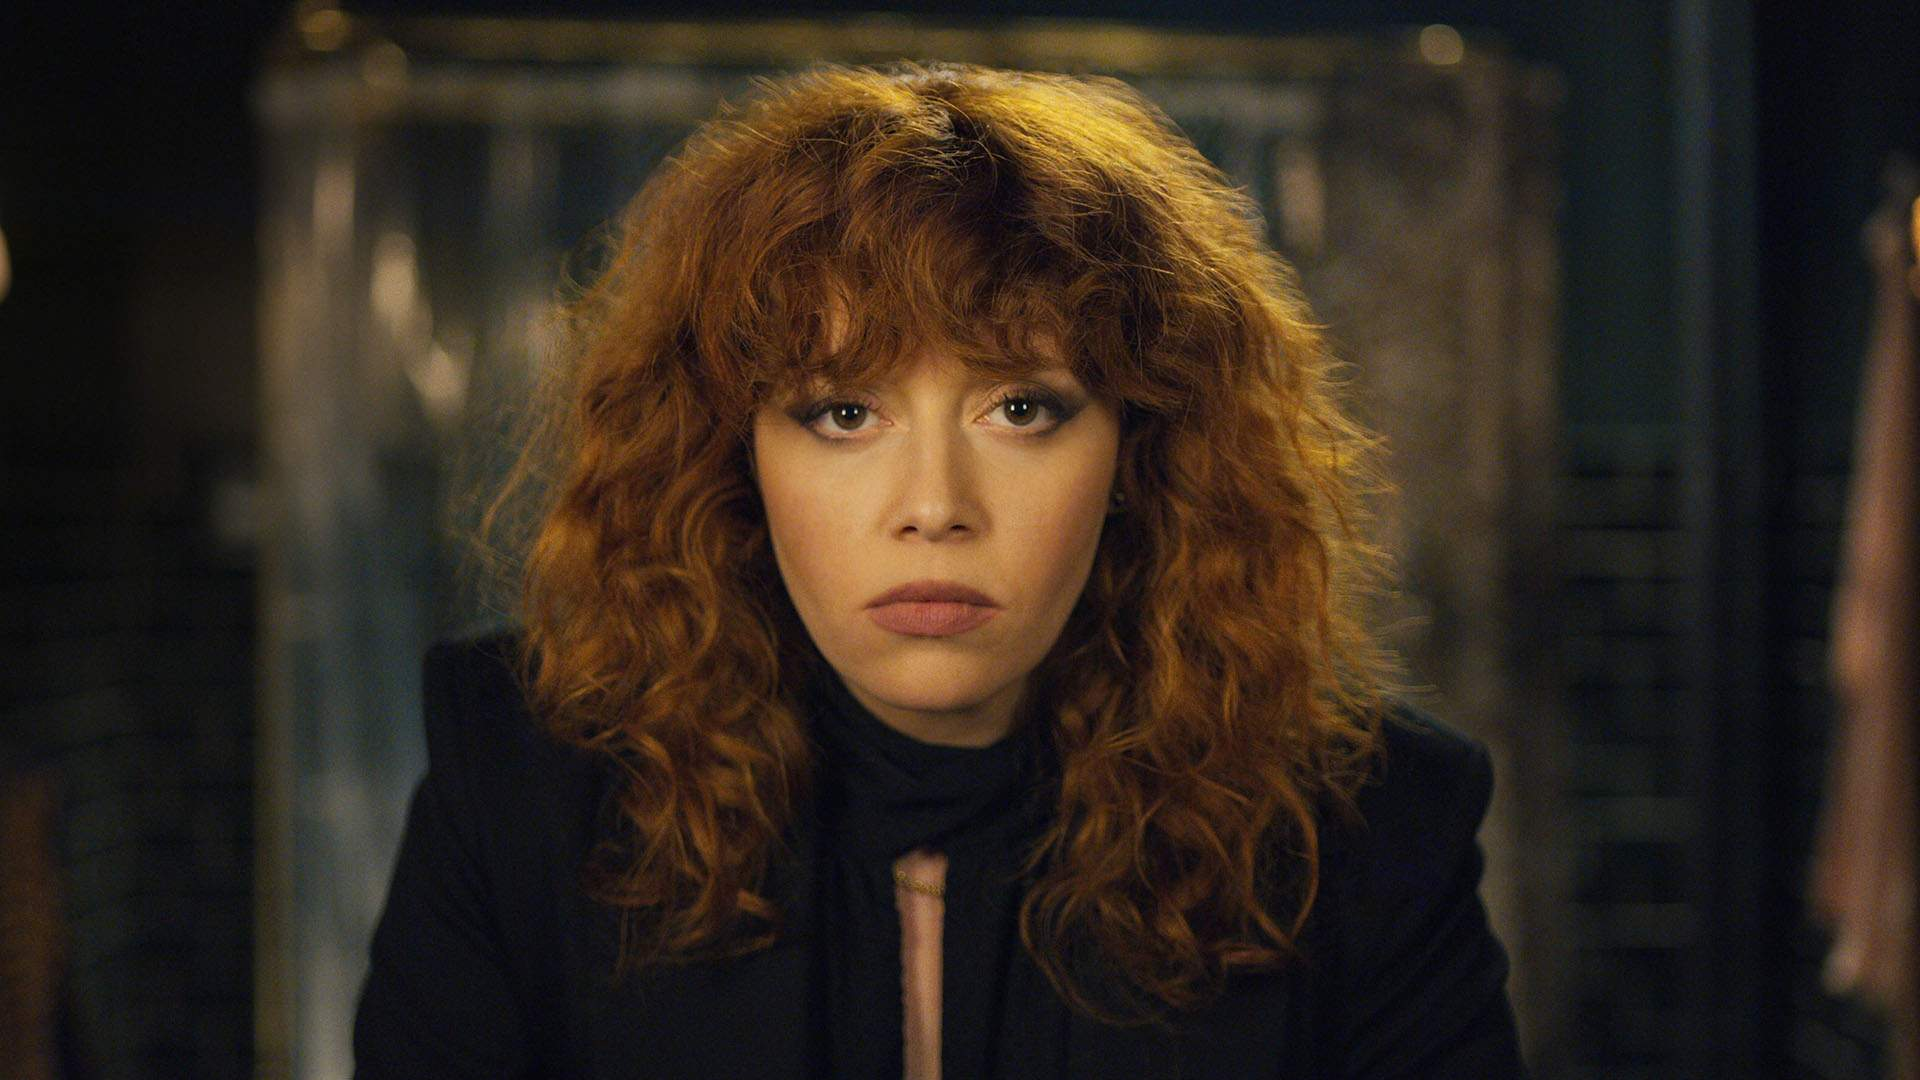 'Russian Doll' Is the Smart, Dark and Hilarious New Netflix Show You'll Want to Binge-Watch ASAP